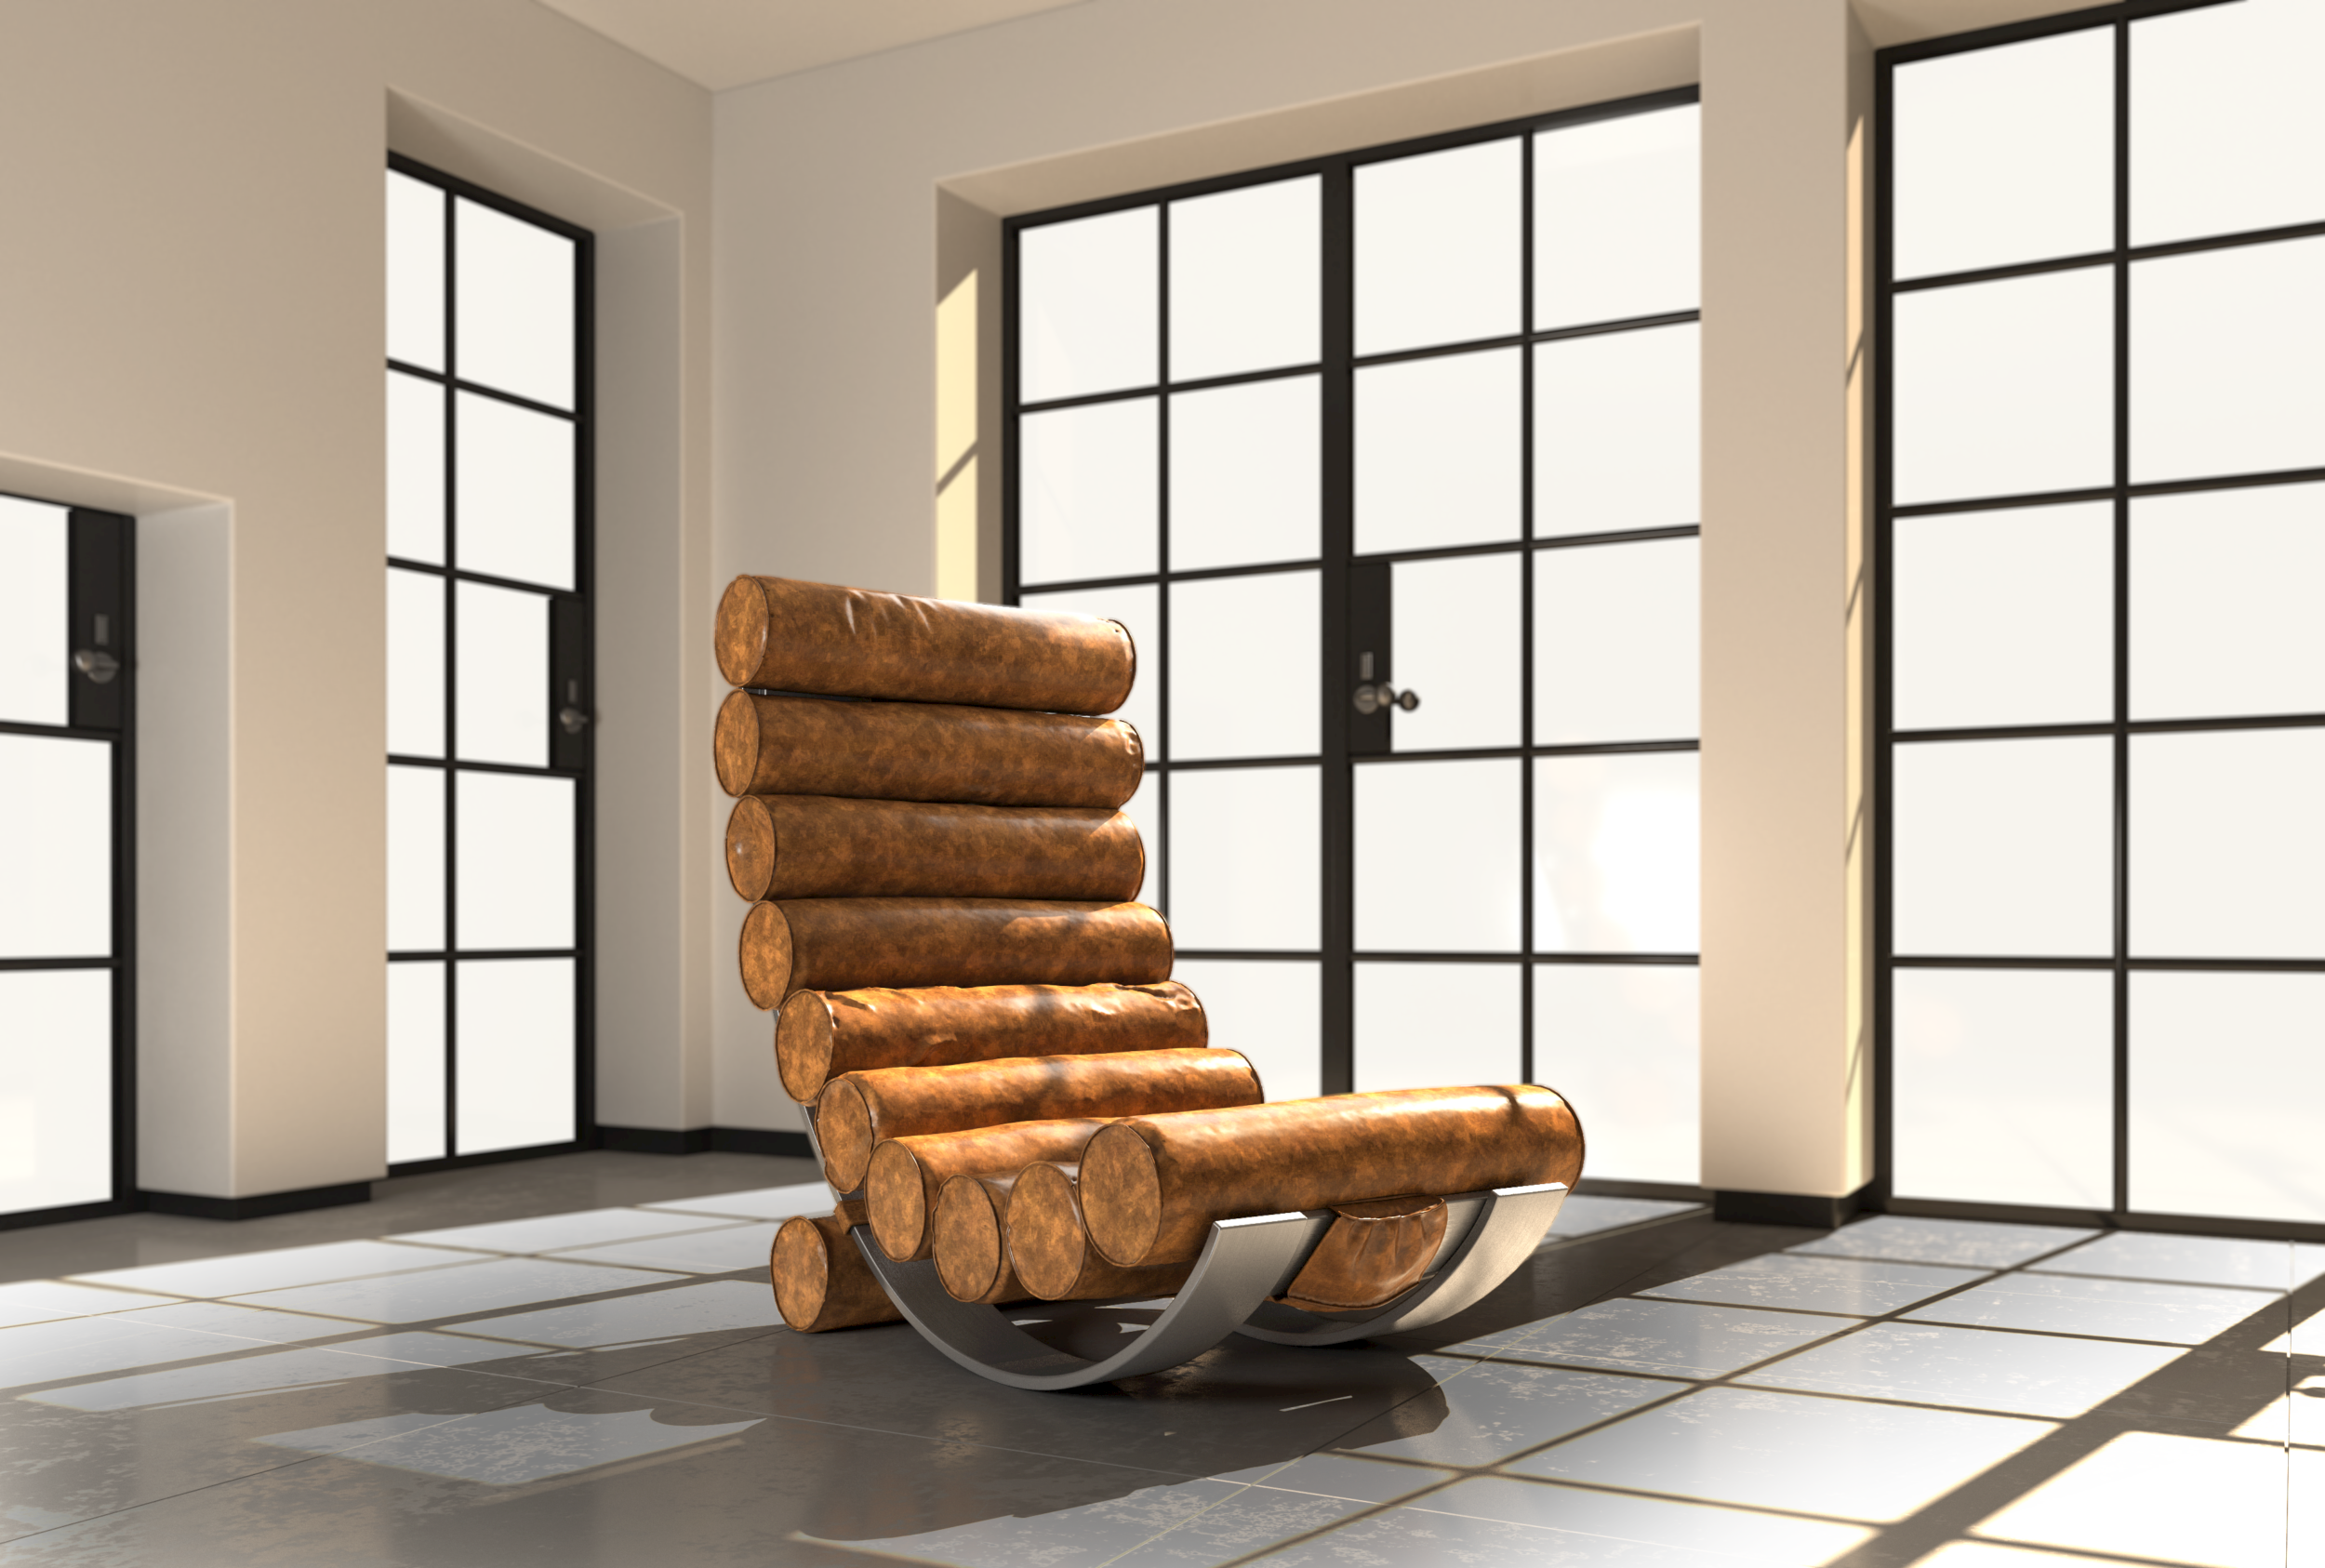 Woodycad 3d furniture design download download qatar clock Furniture design software free download